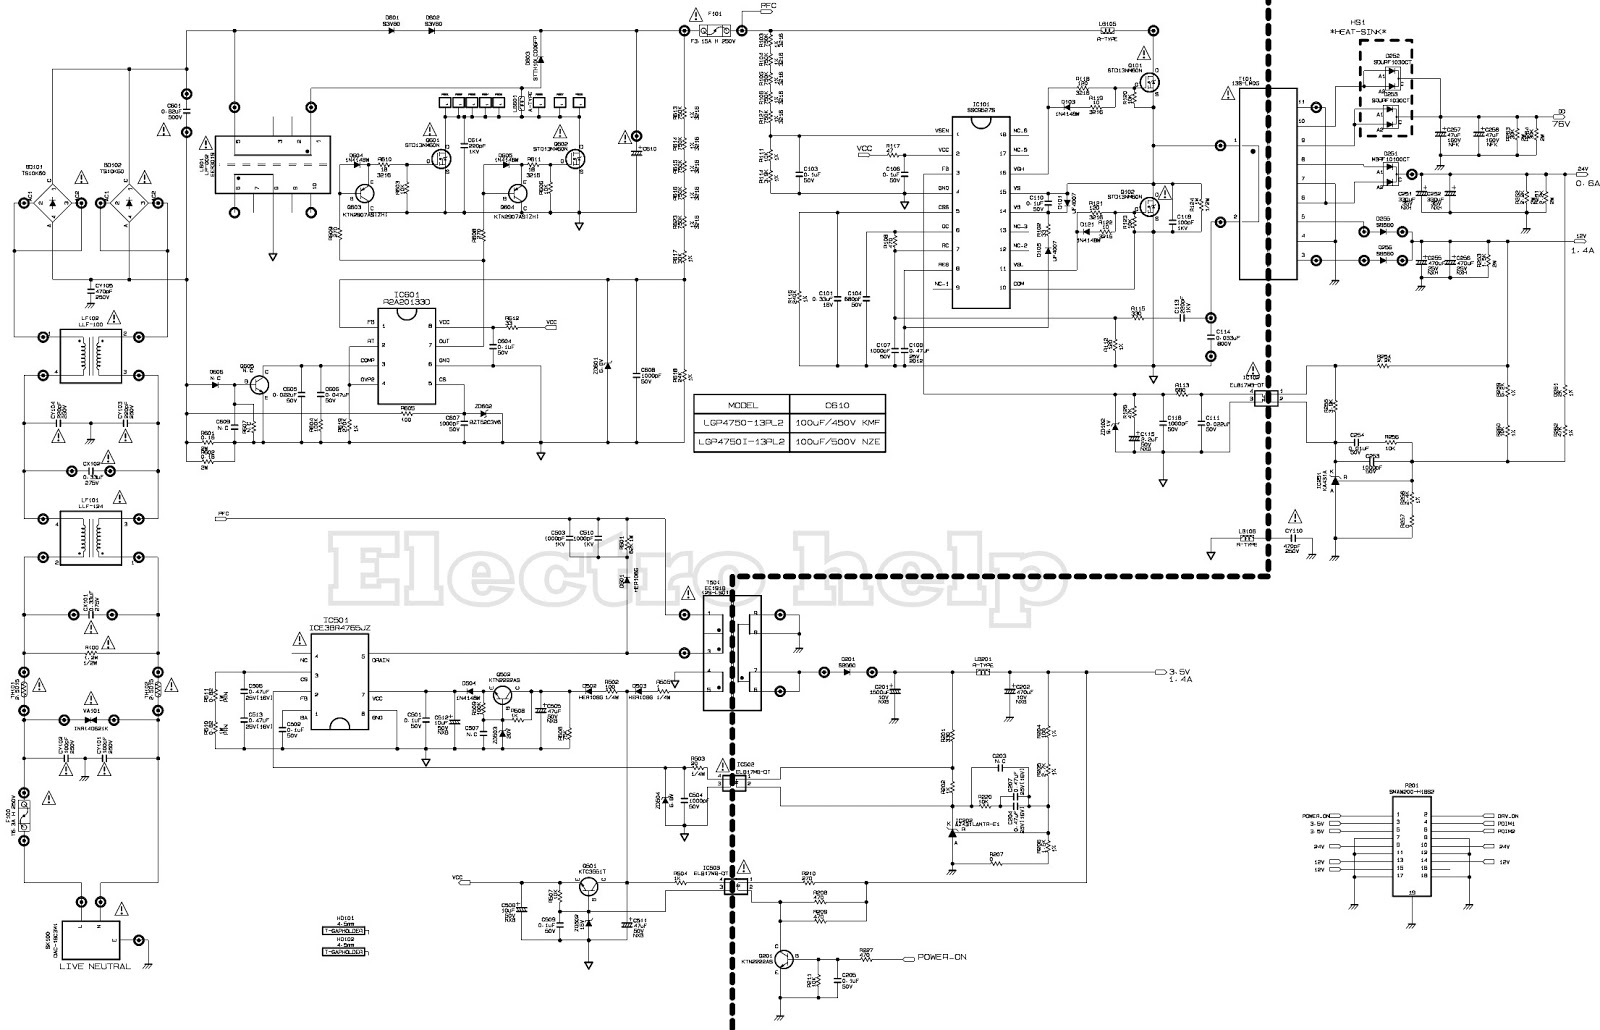 Lg Power Supply - Eay62810801 - Schematic